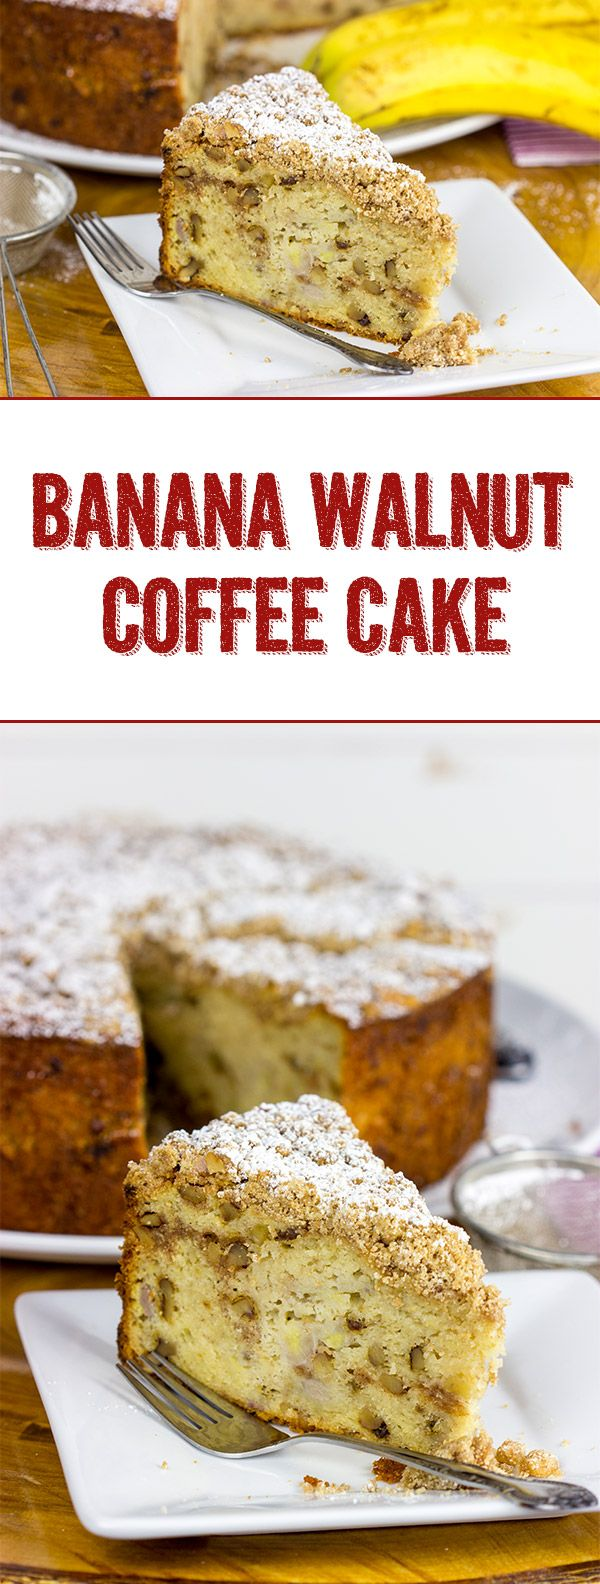 """My wife called this Banana Walnut Coffee Cake """"something that would make a bakery in the South famous."""" Bake this one up and let me know what you think!  :-)"""